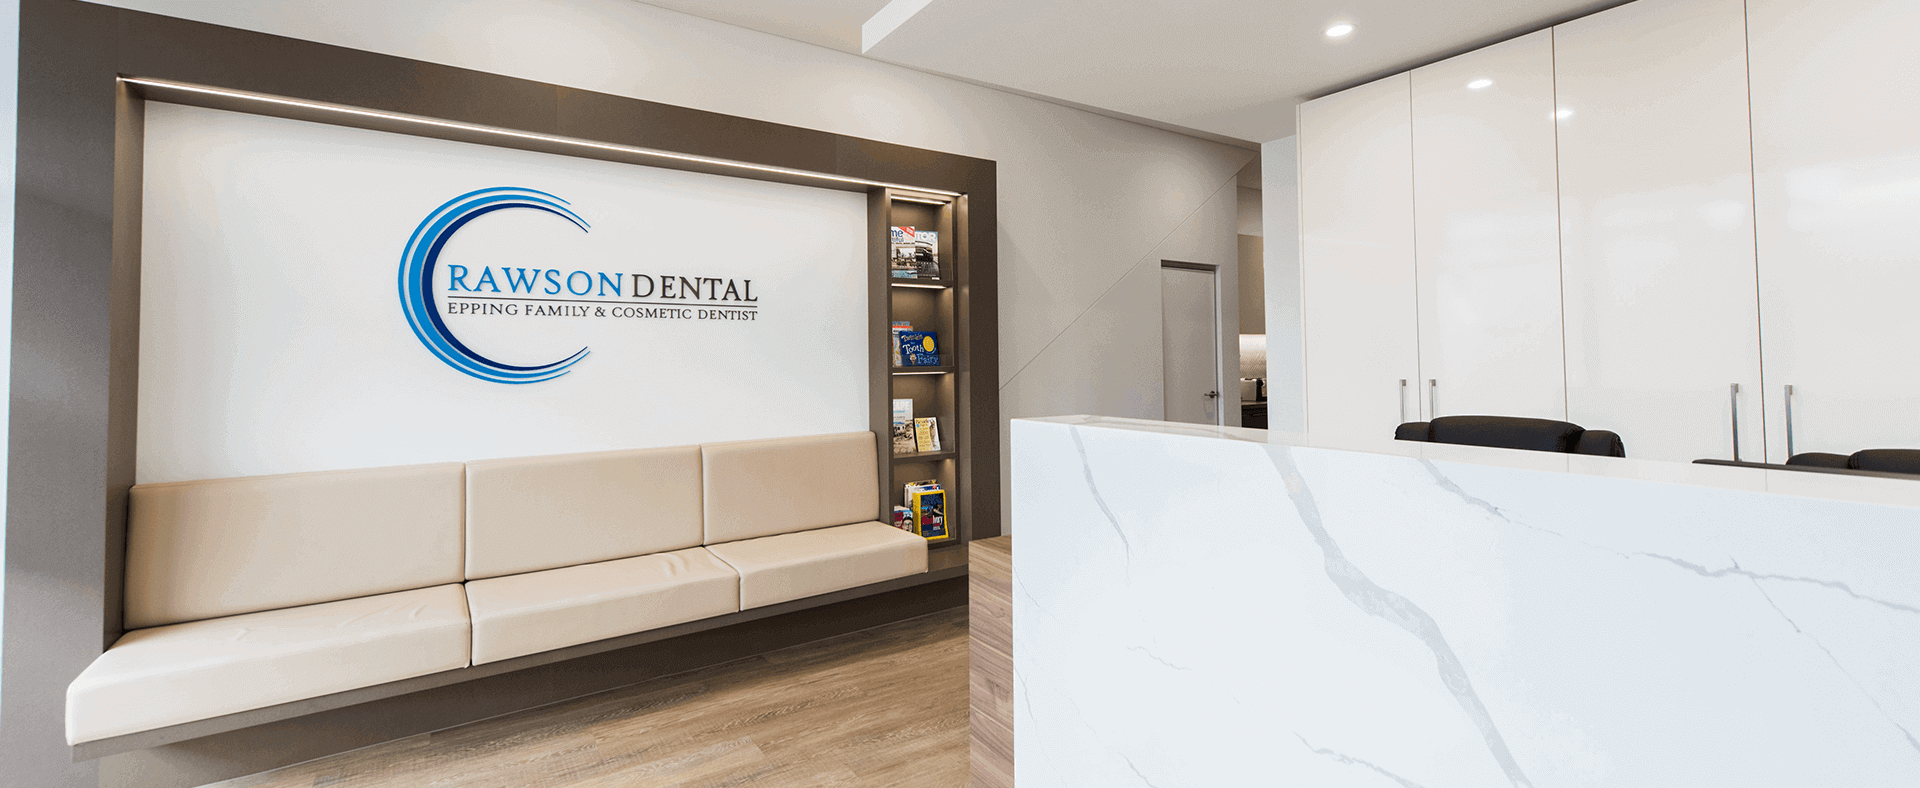 Best Dentist Epping dentist